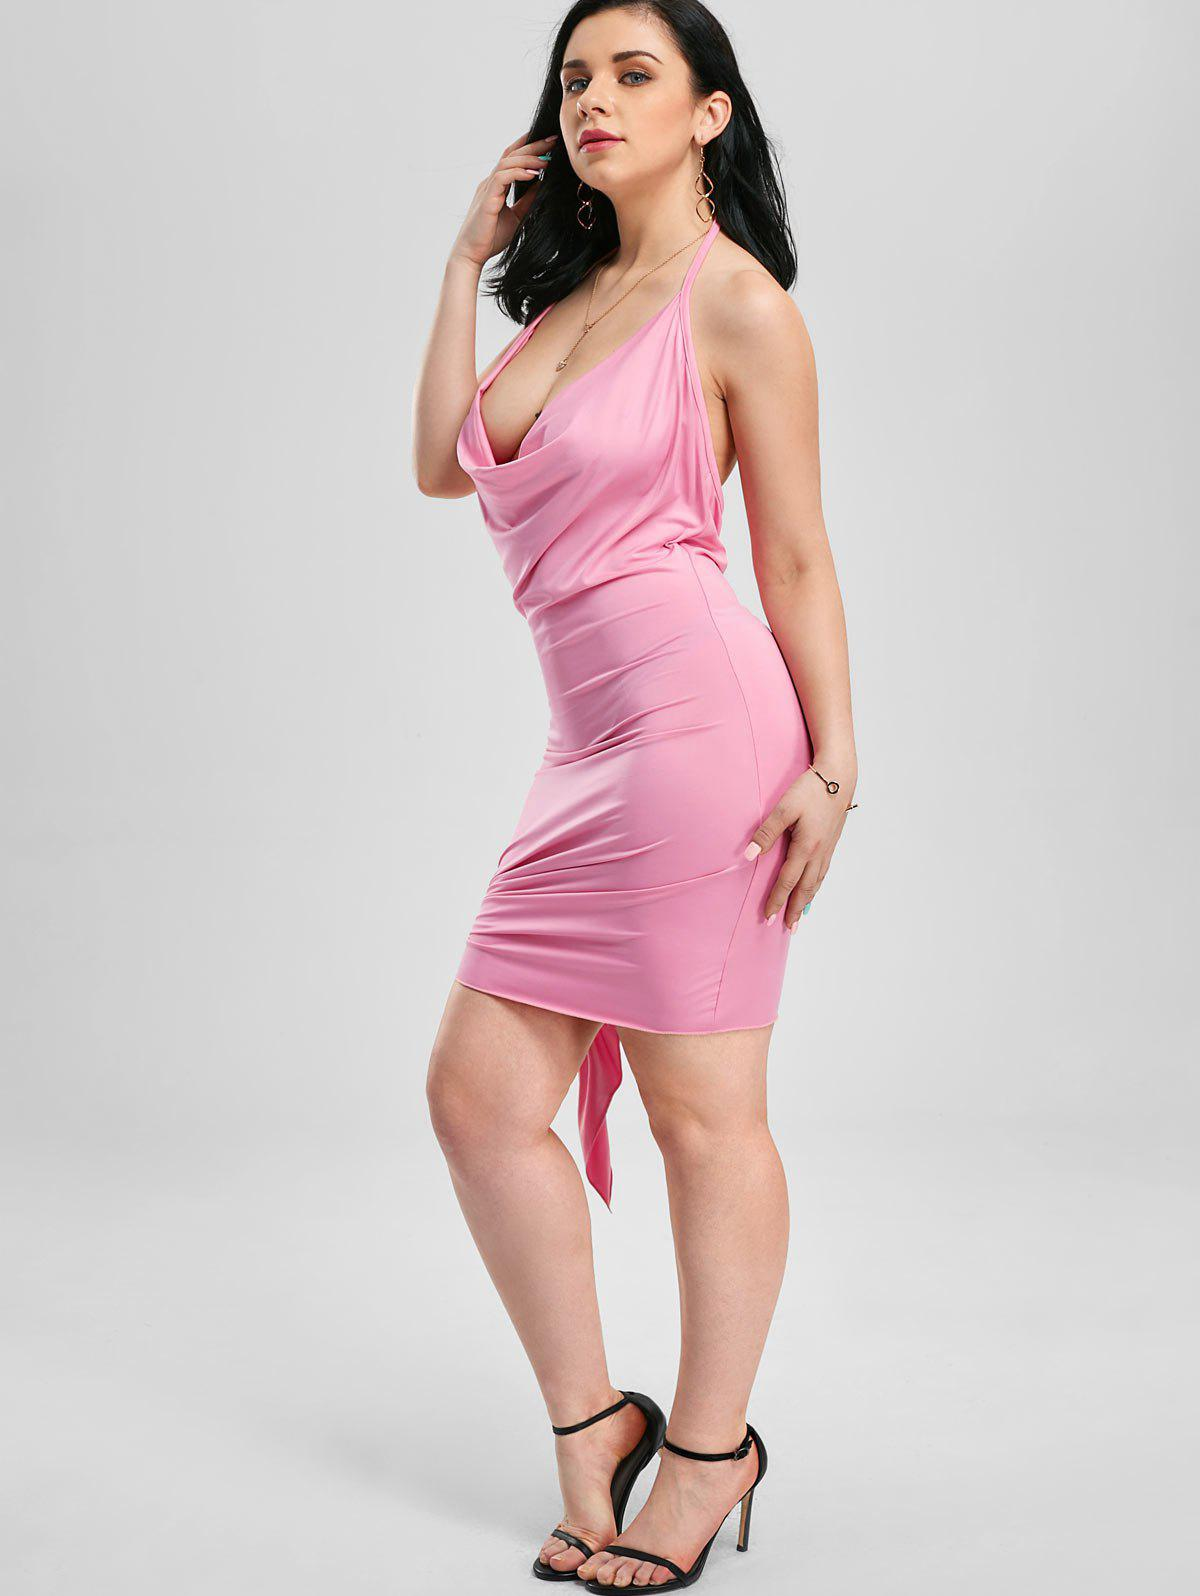 Halter Backless Mini Club Dress - PINK S